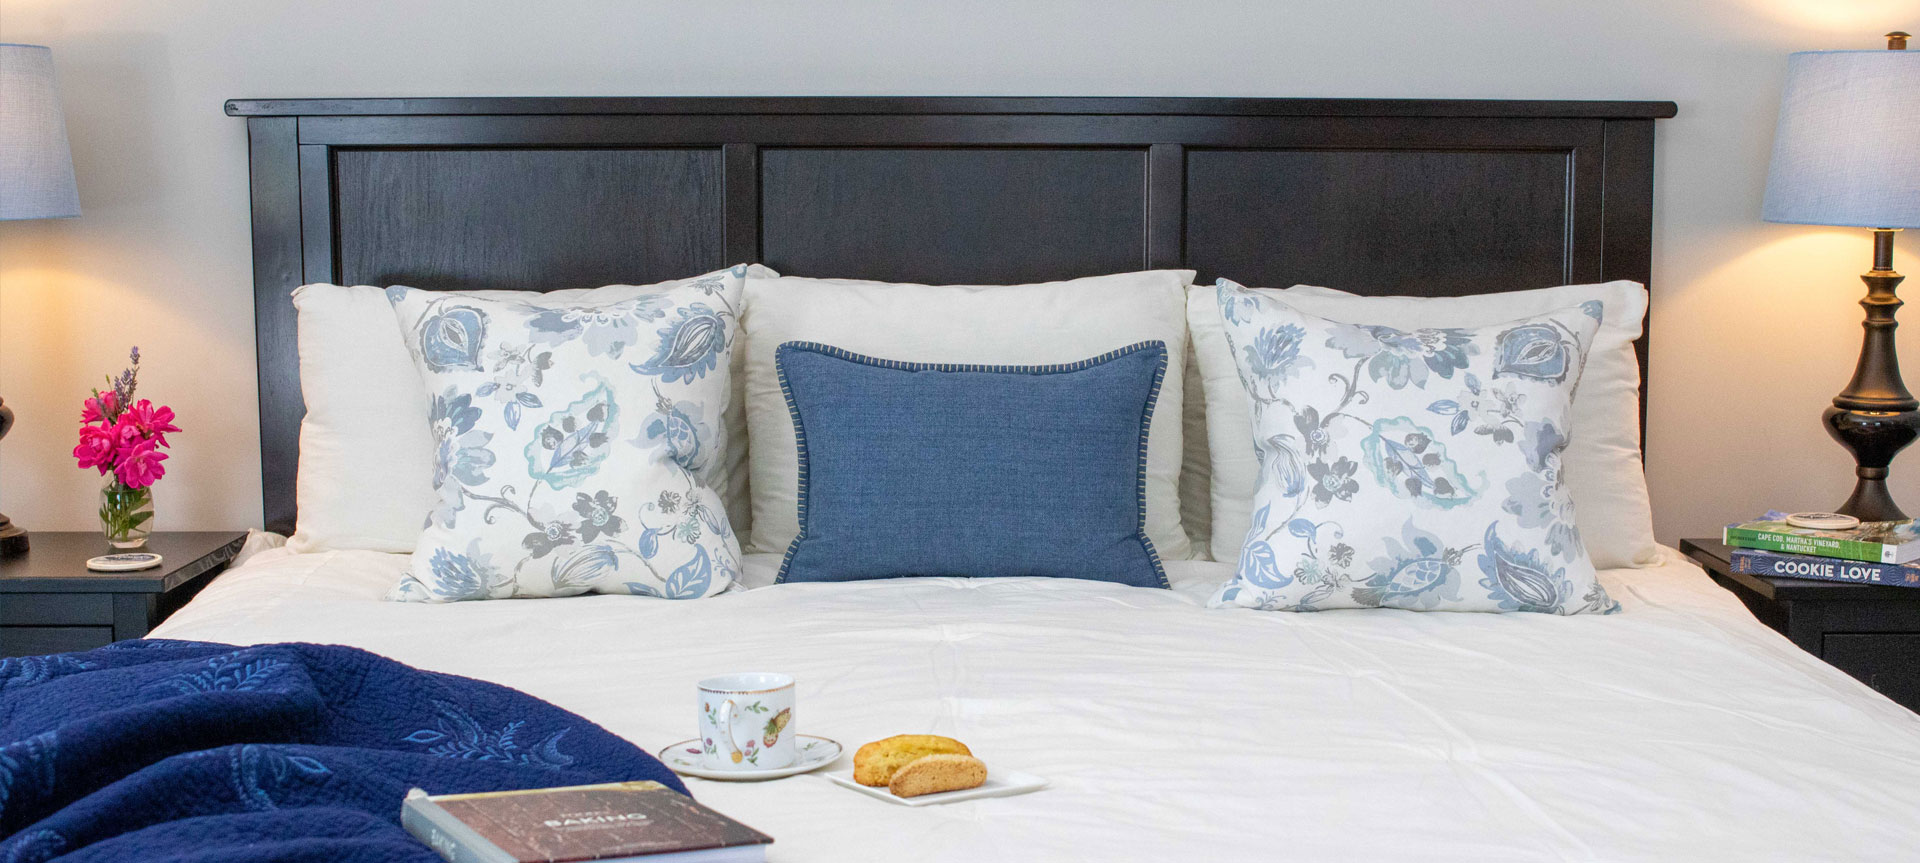 about-the-inn-our-beds